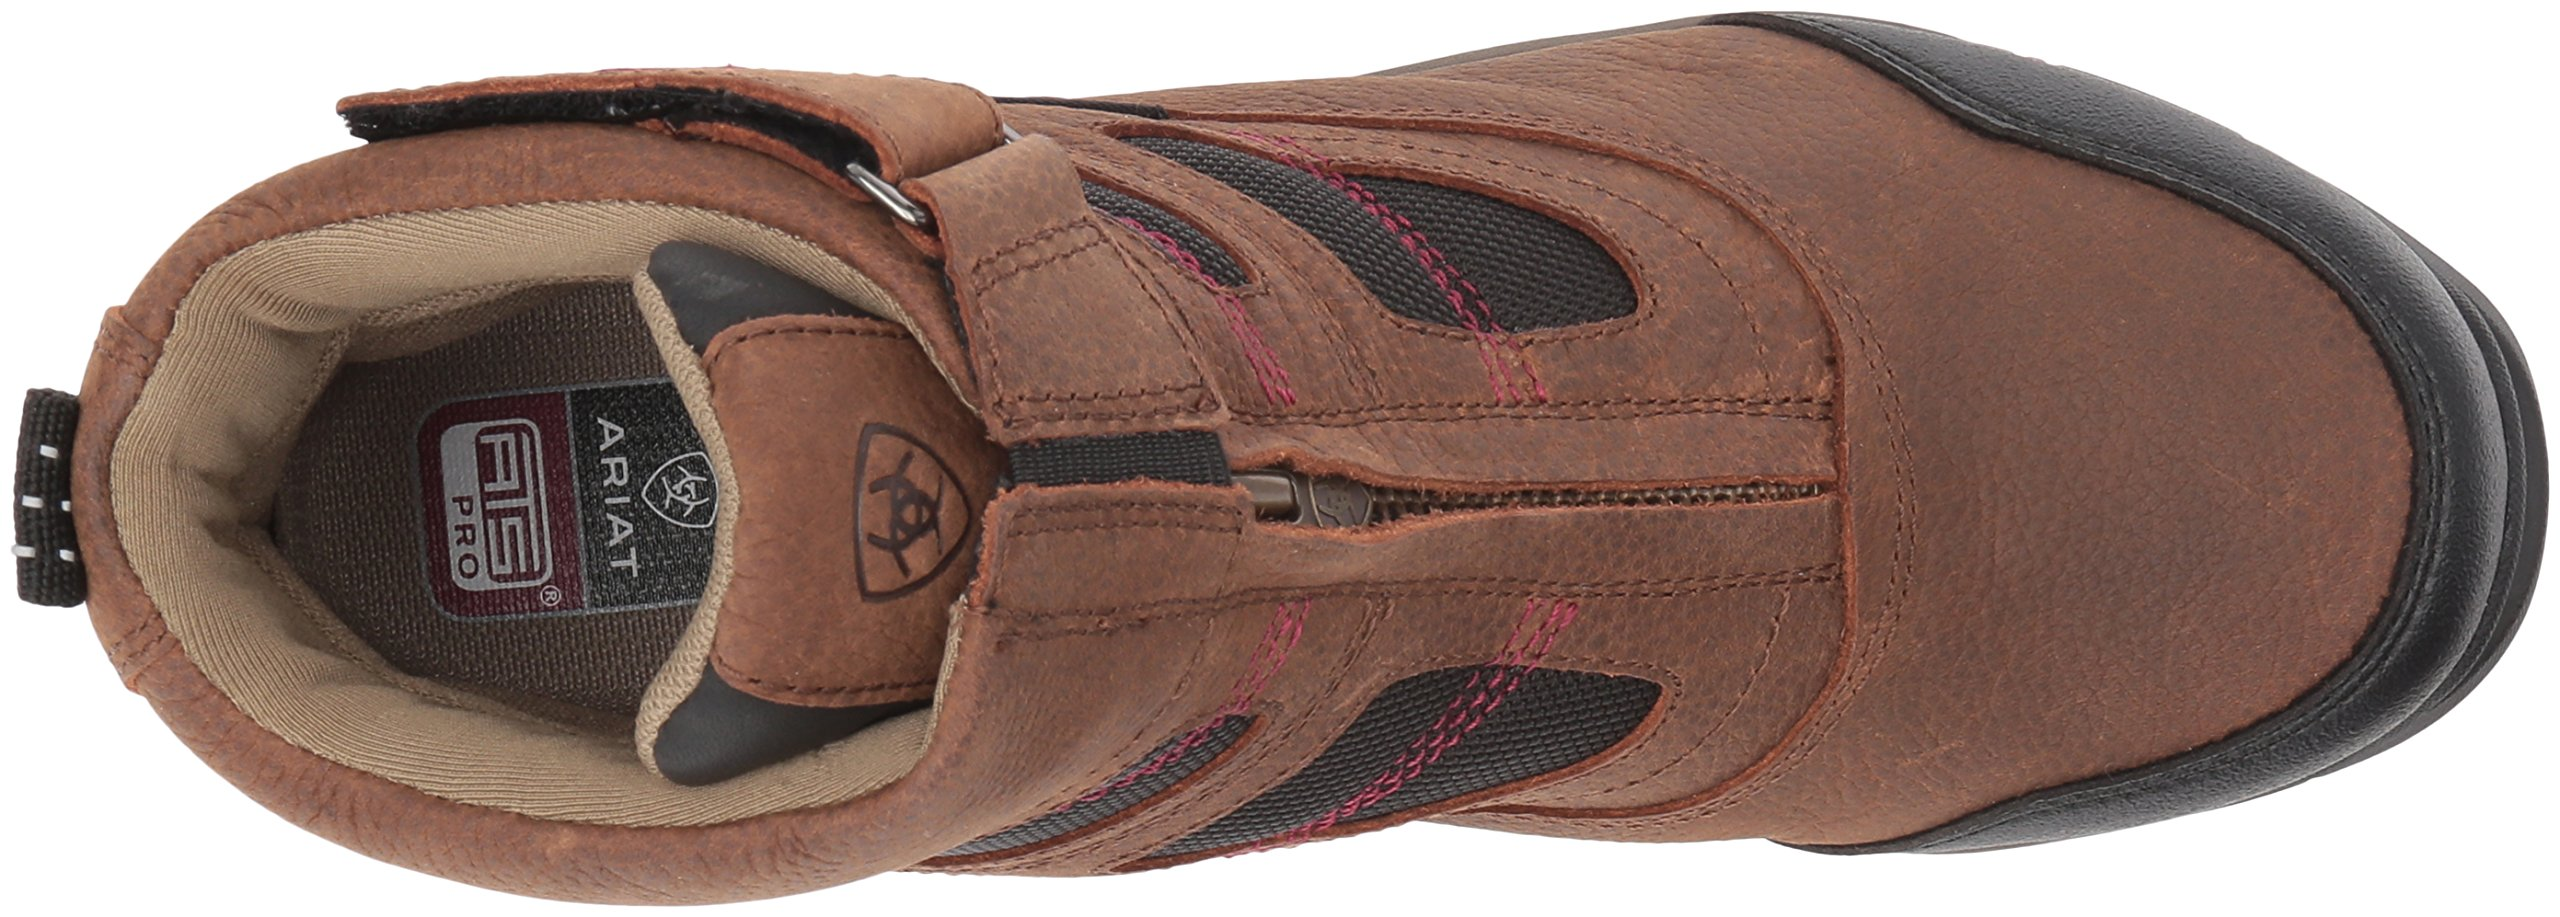 Ariat Women's Terrain Pro Zip H2O Work Boot, Brown, 7 B US by Ariat (Image #8)